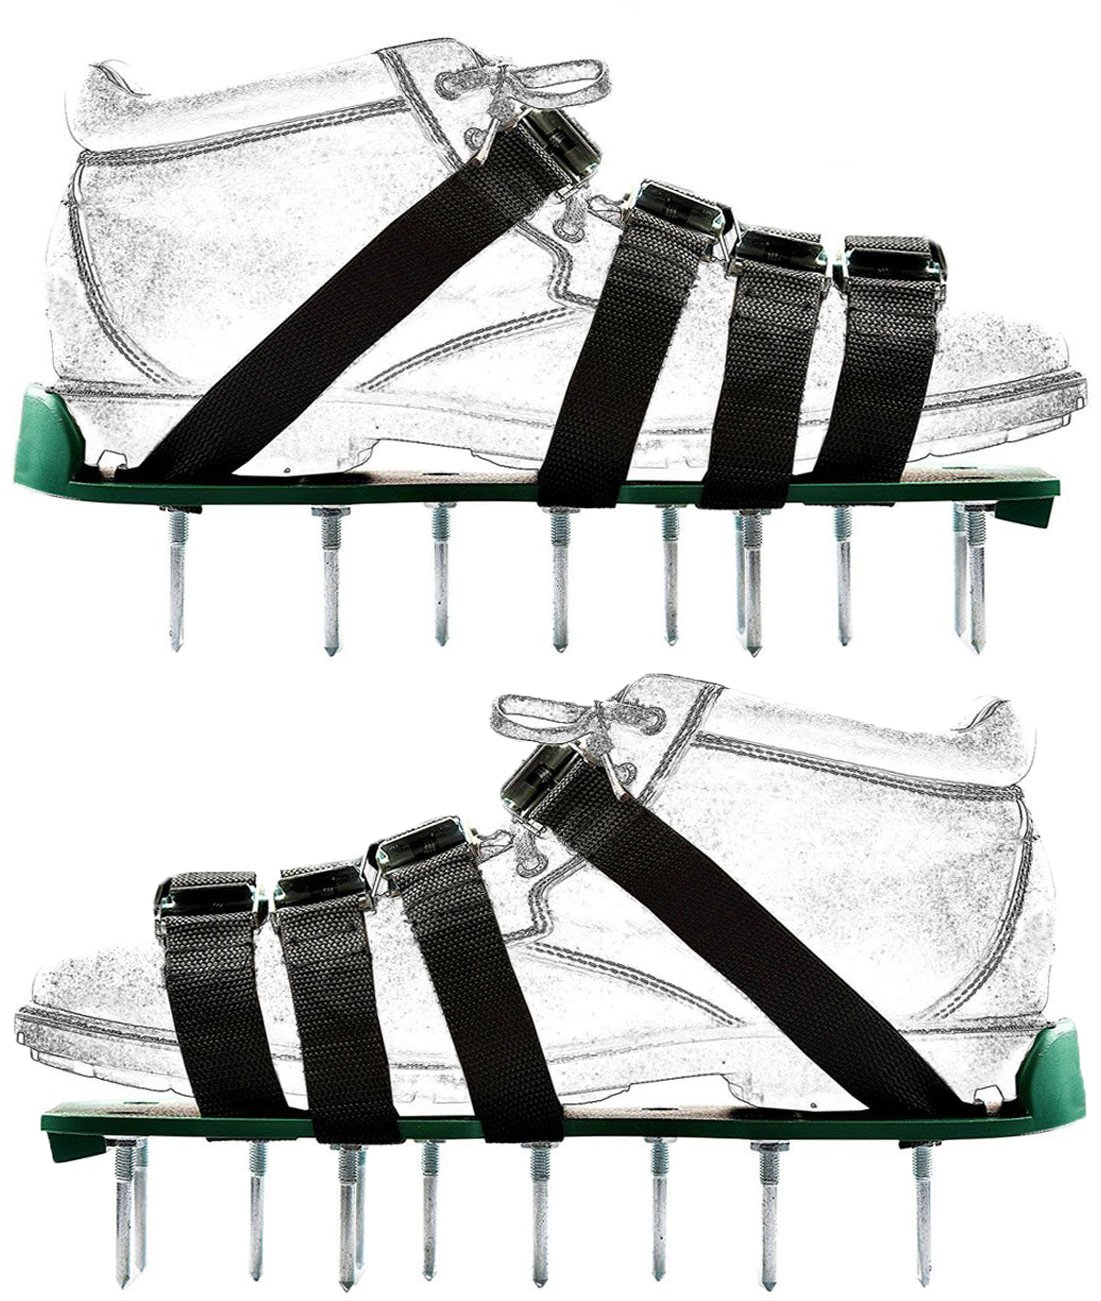 Bettli Lawn Aerator Shoes,Heavy Duty Aerating Spiked Soil Sandals with 4 Adjustable Straps and Metal Buckles for Aerating Your Lawn or Yard